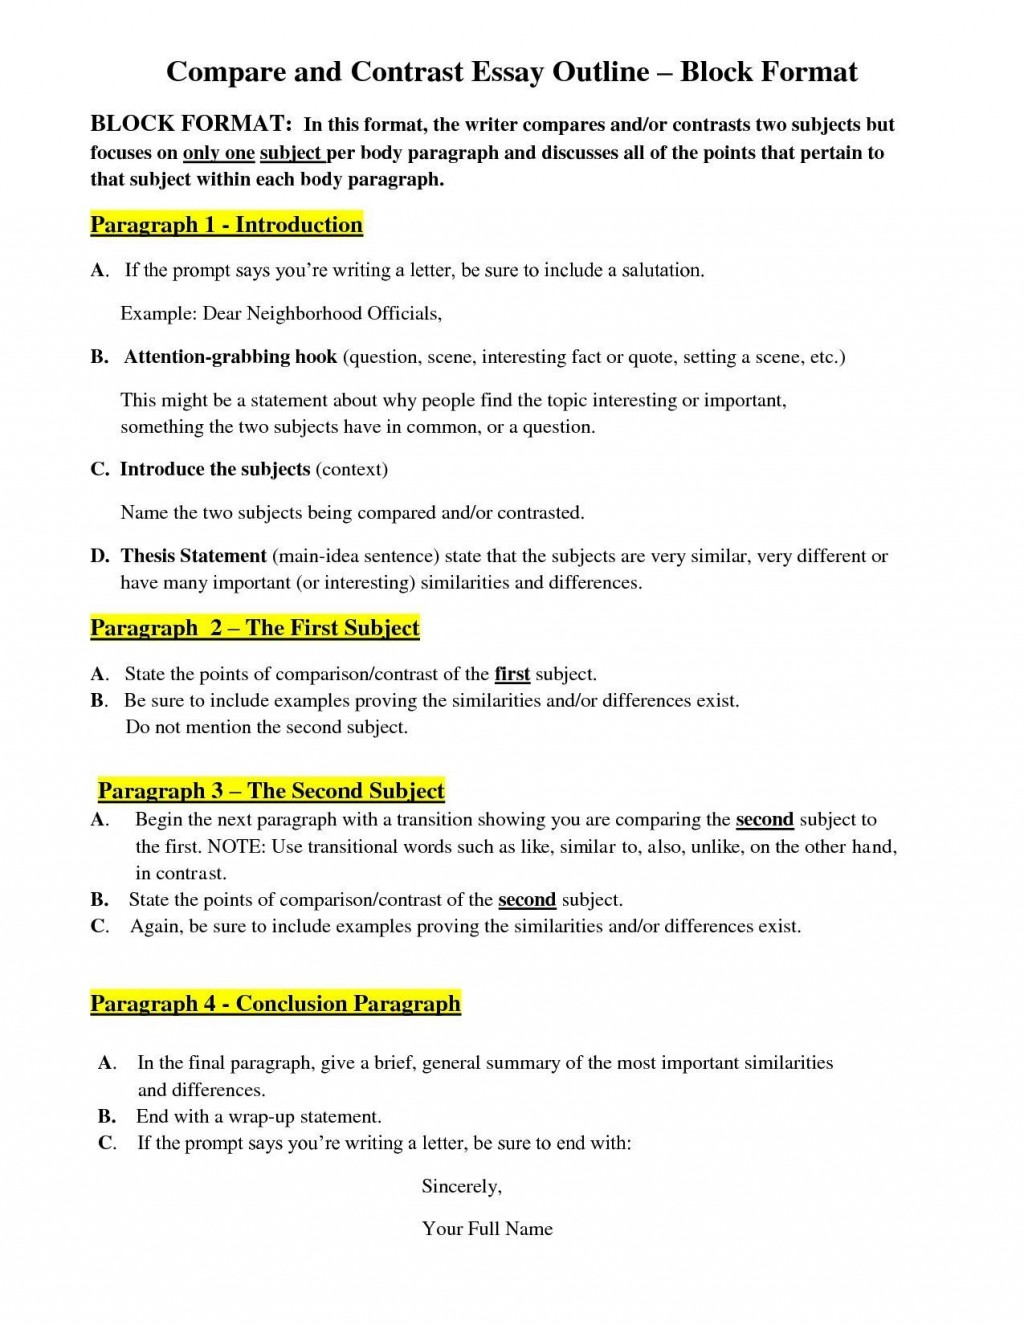 007 Compare And Contrast Essay Frightening Prompts 5th Grade Rubric College Ideas 12th Large